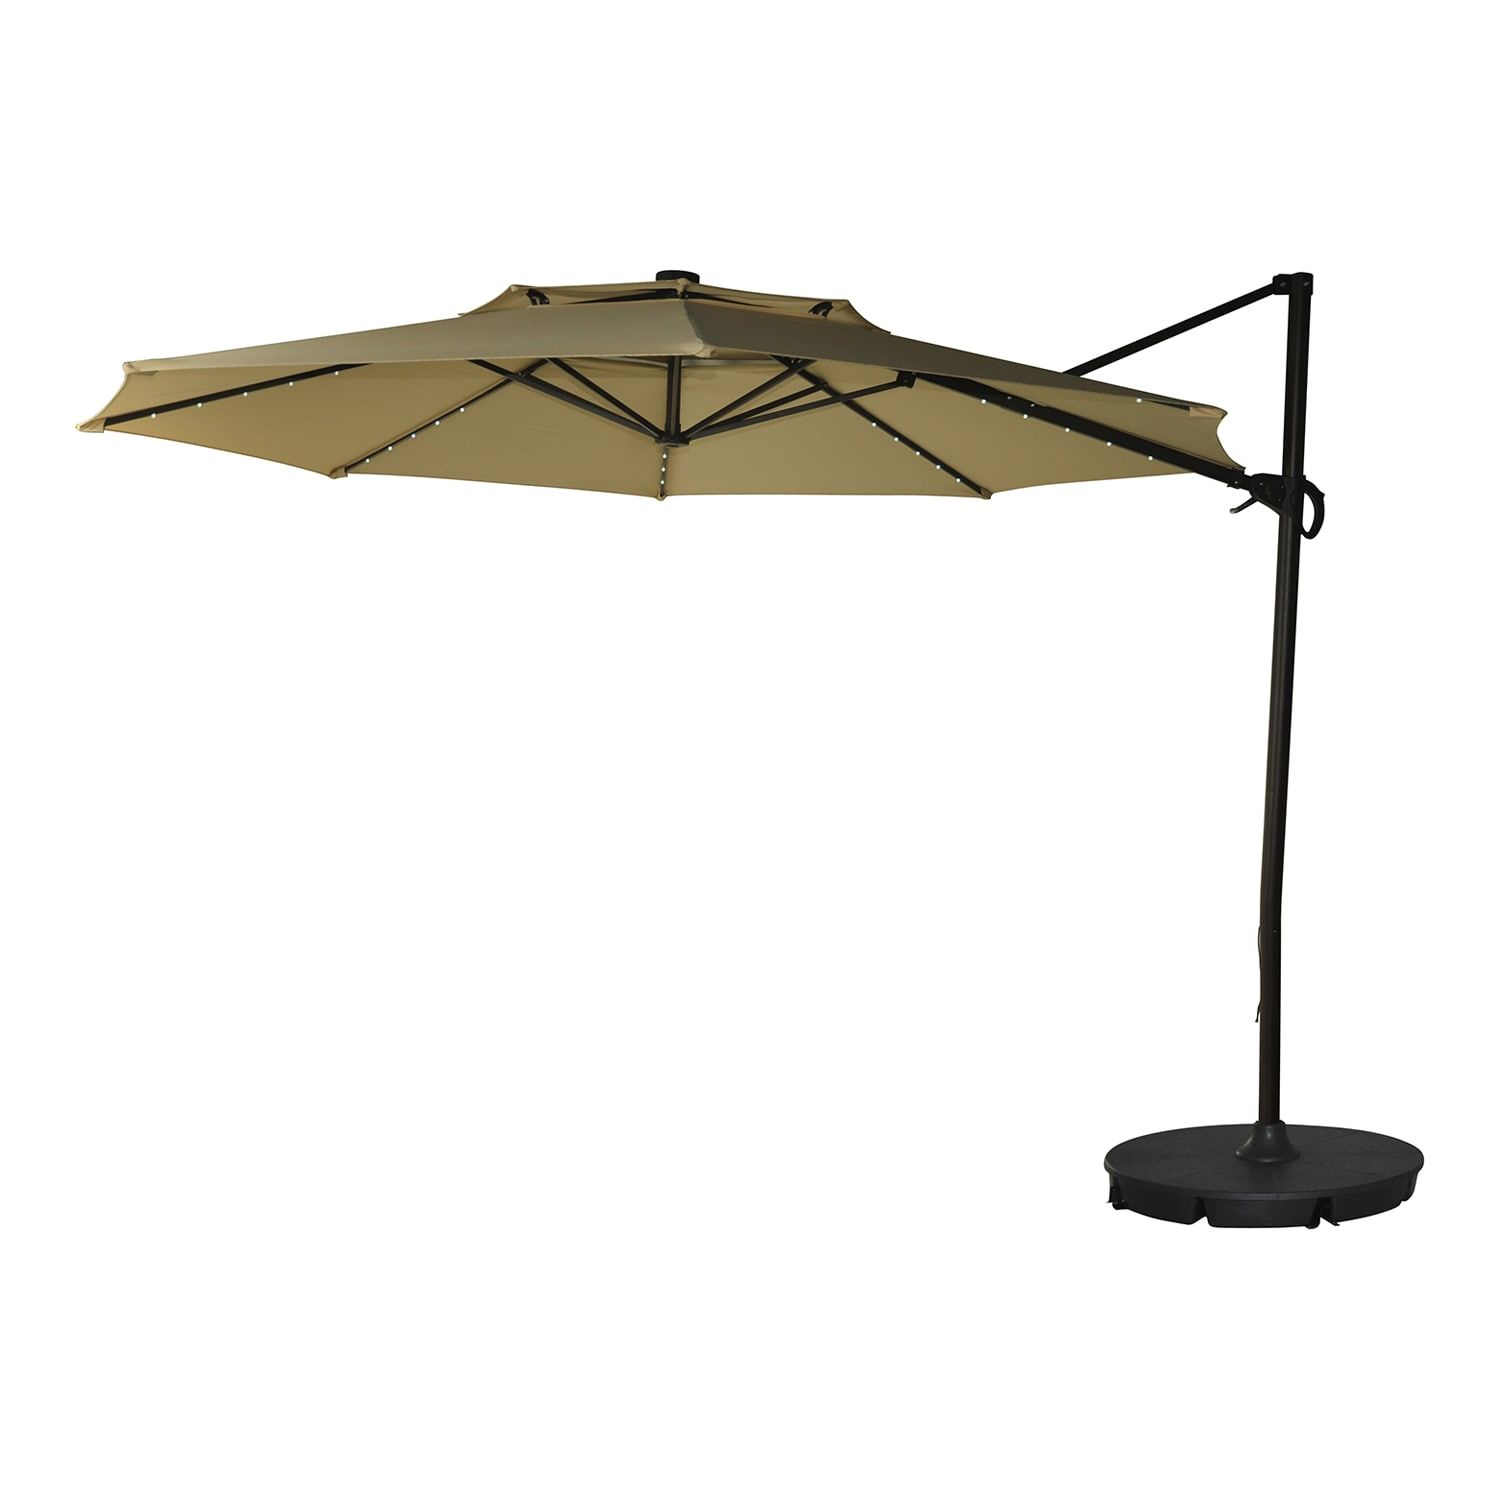 Sonoma Goods For Life 11 Ft Solar Led Cantilever Patio Umbrella Affiliate Ft Affiliate Life Sonoma Cantilever Patio Umbrella Patio Umbrella Solar Led